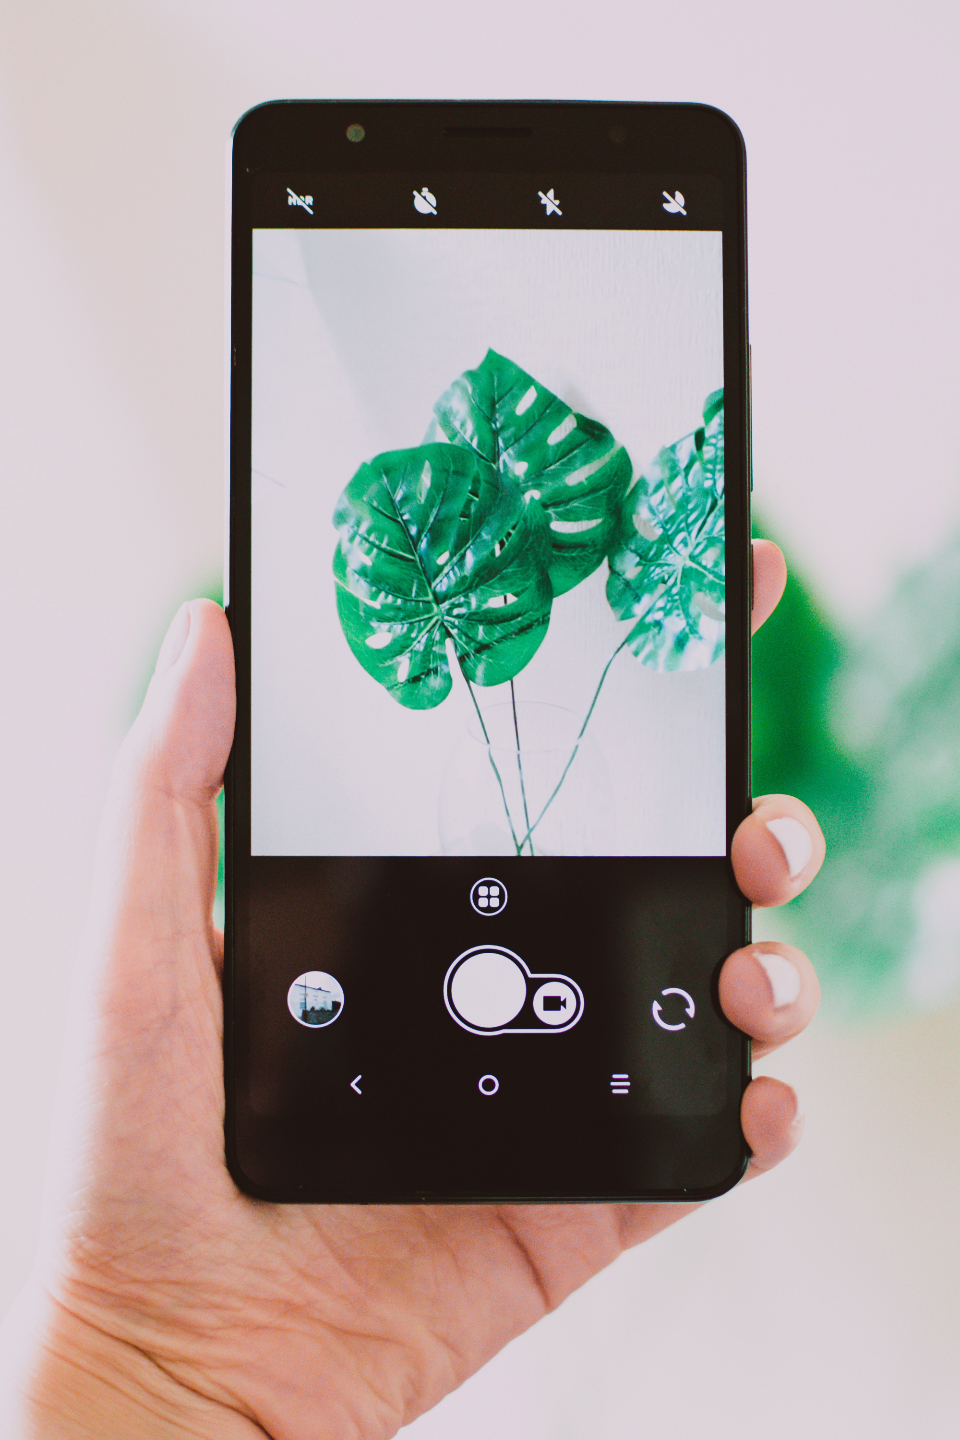 mobile photograph plant green nature device technology photo app mobile phone cellphone hand hold held